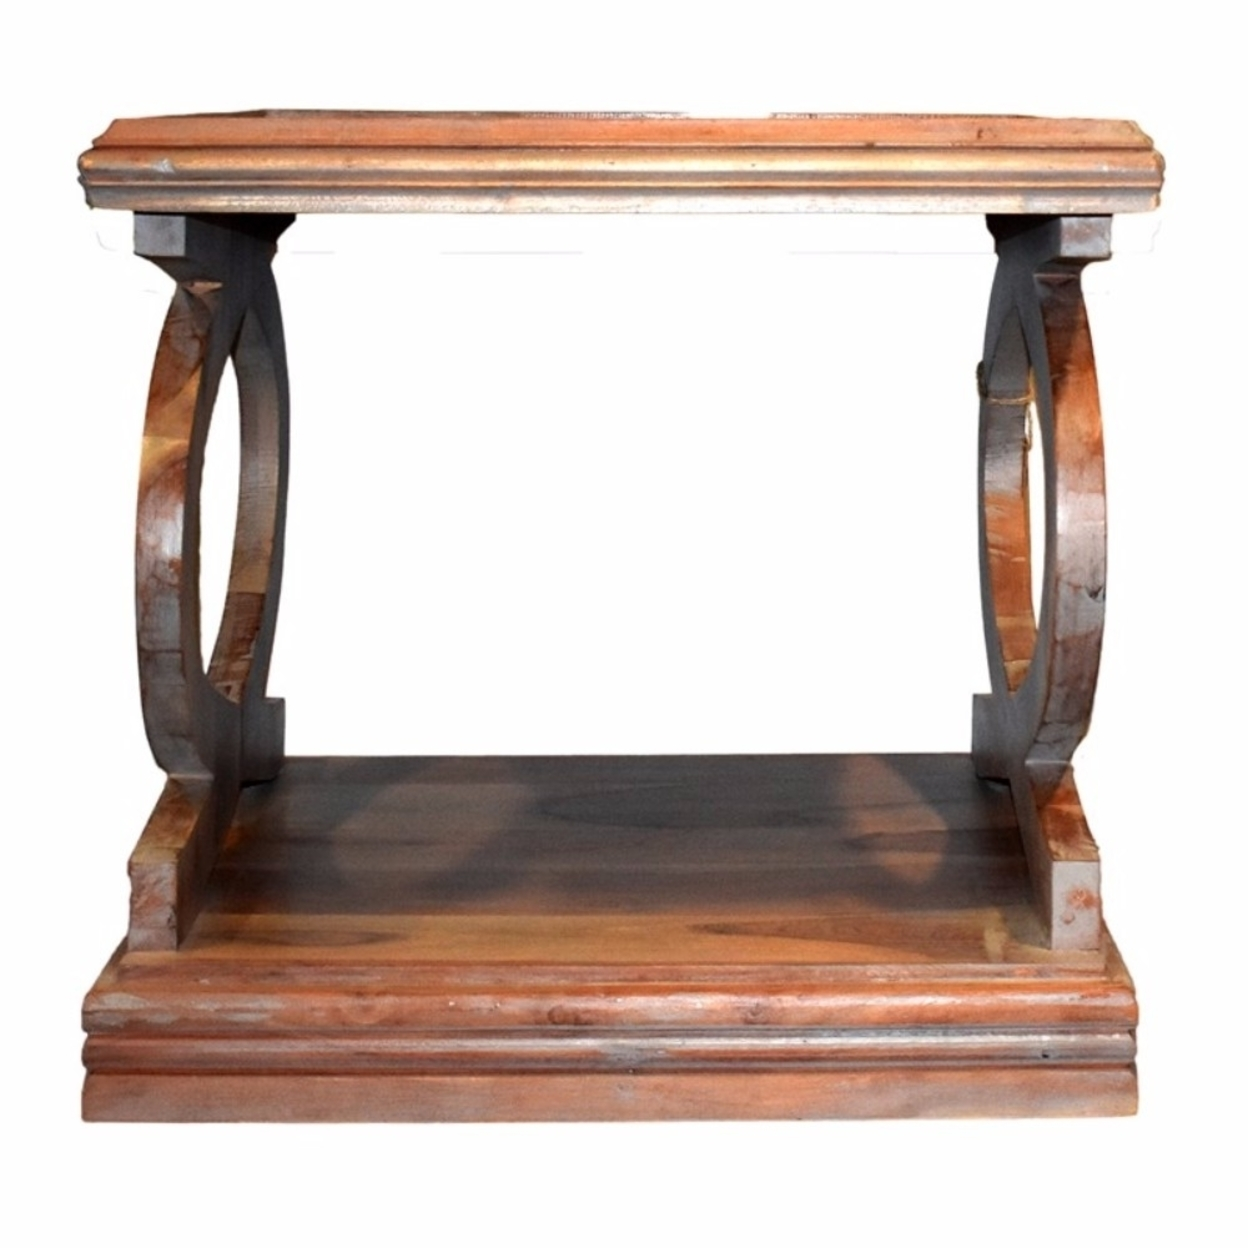 Transitional Style Sturdy Wooden Side Table, Brown 5a1bec4c2a00e409e16a2e64